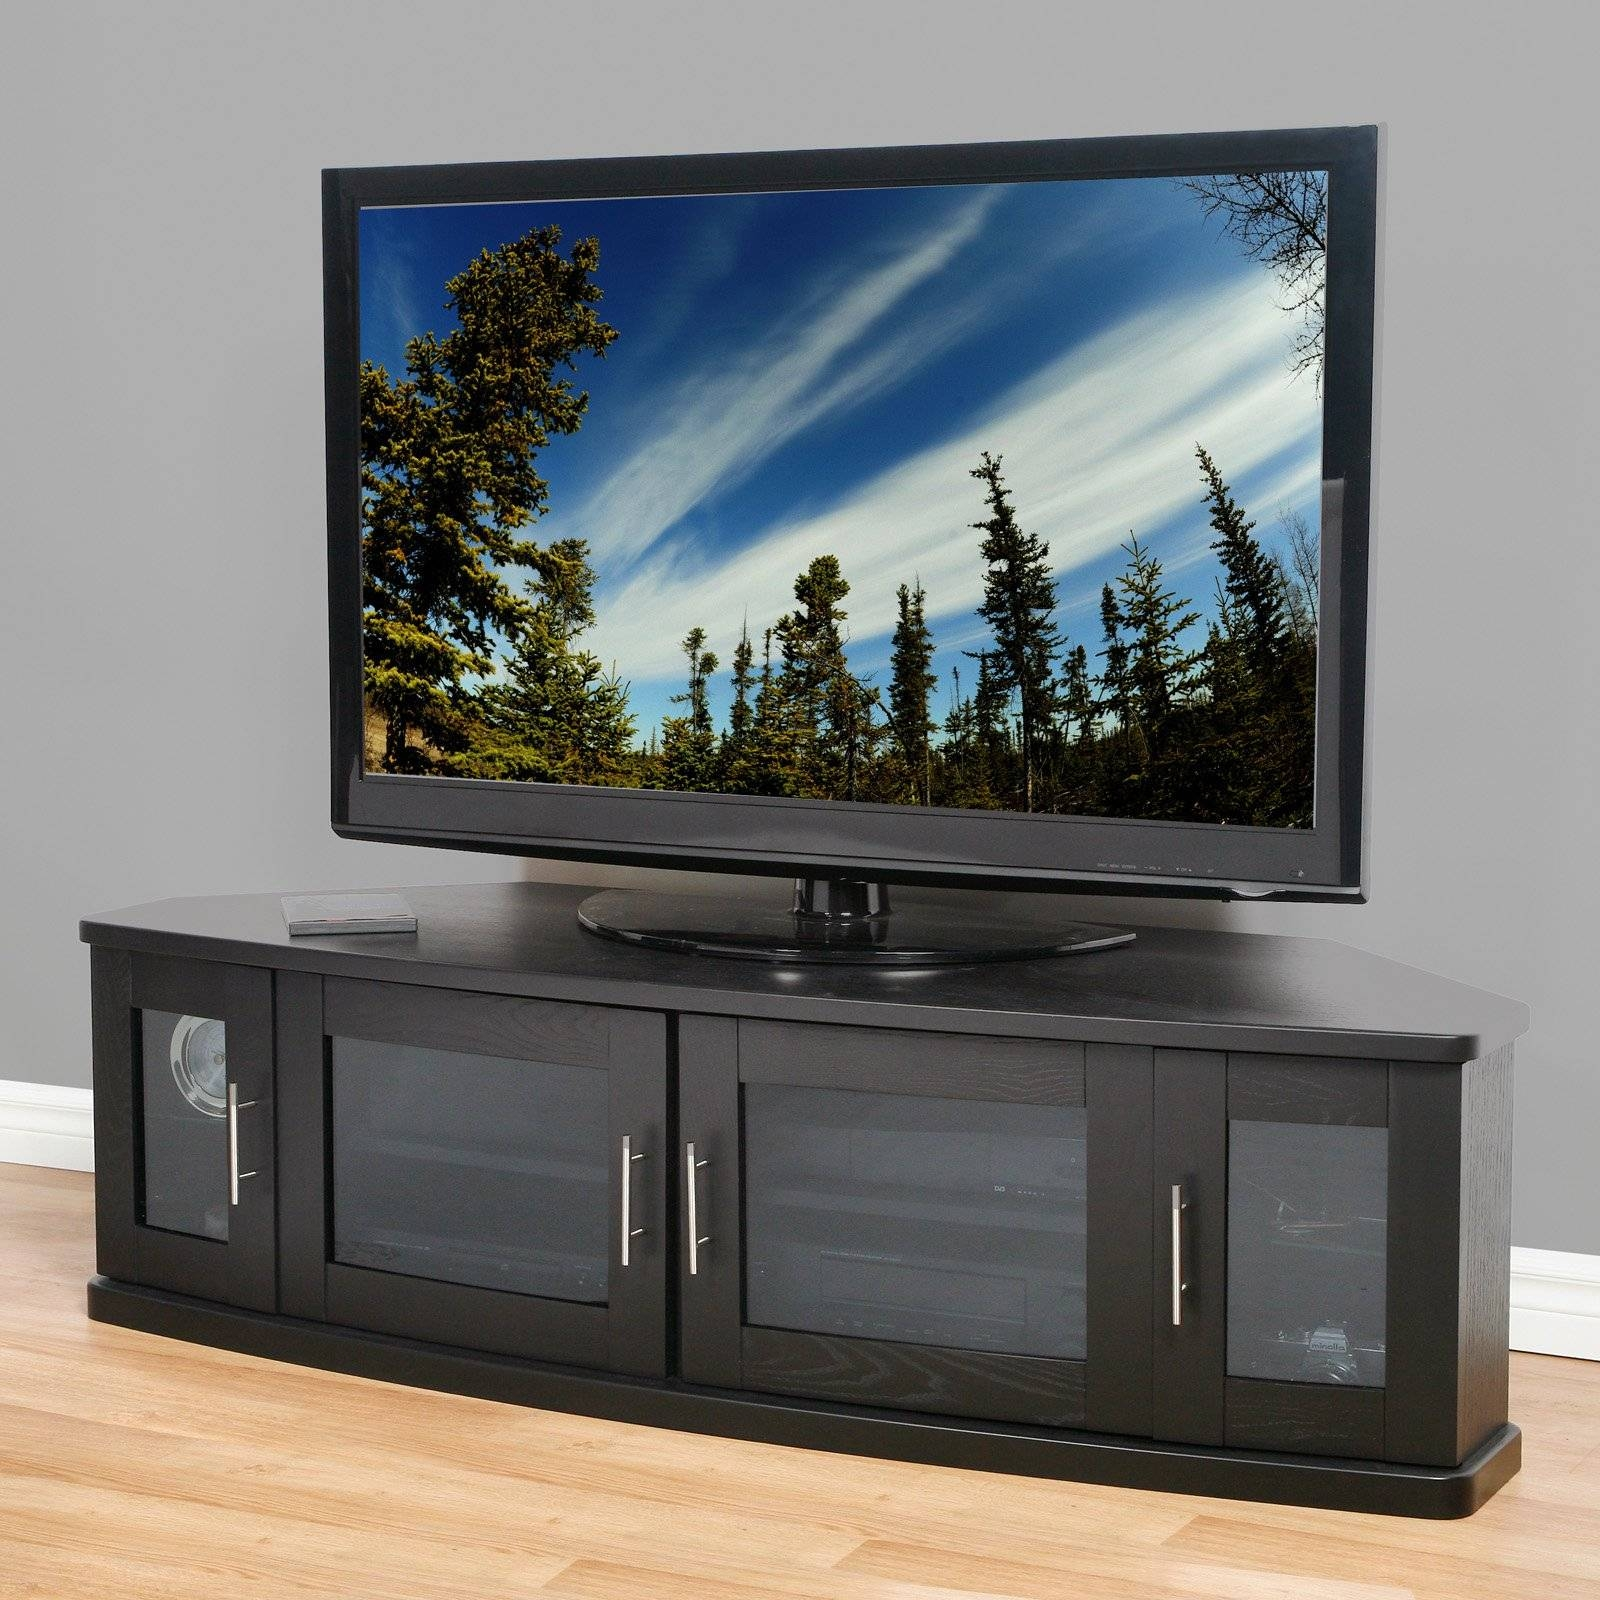 Modern Black Wooden Tv Stand With Frosted Glass Doors Of Dazzling with Wooden Tv Cabinets With Glass Doors (Image 10 of 15)